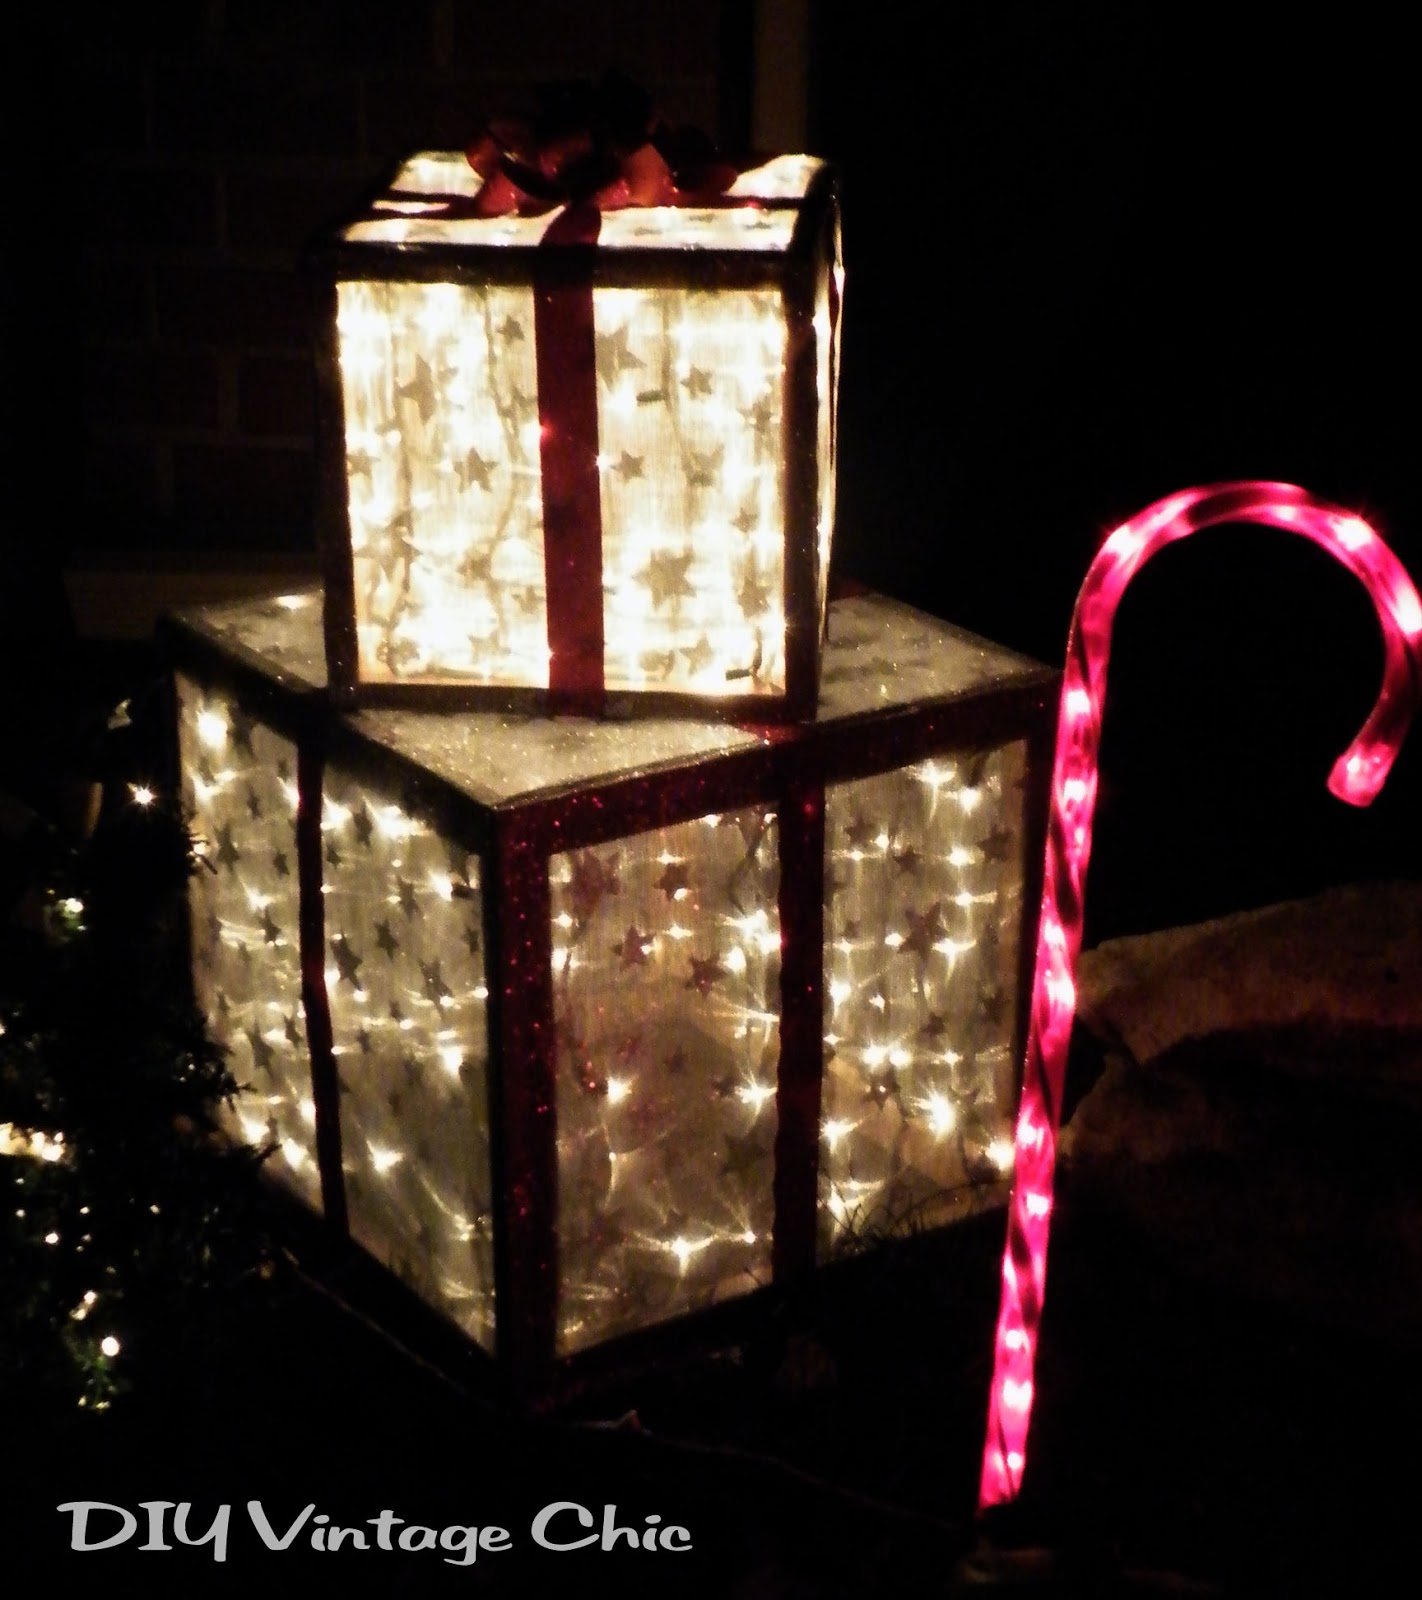 diy lighted lawn decorations remodelaholic diy outdoor decor for winter